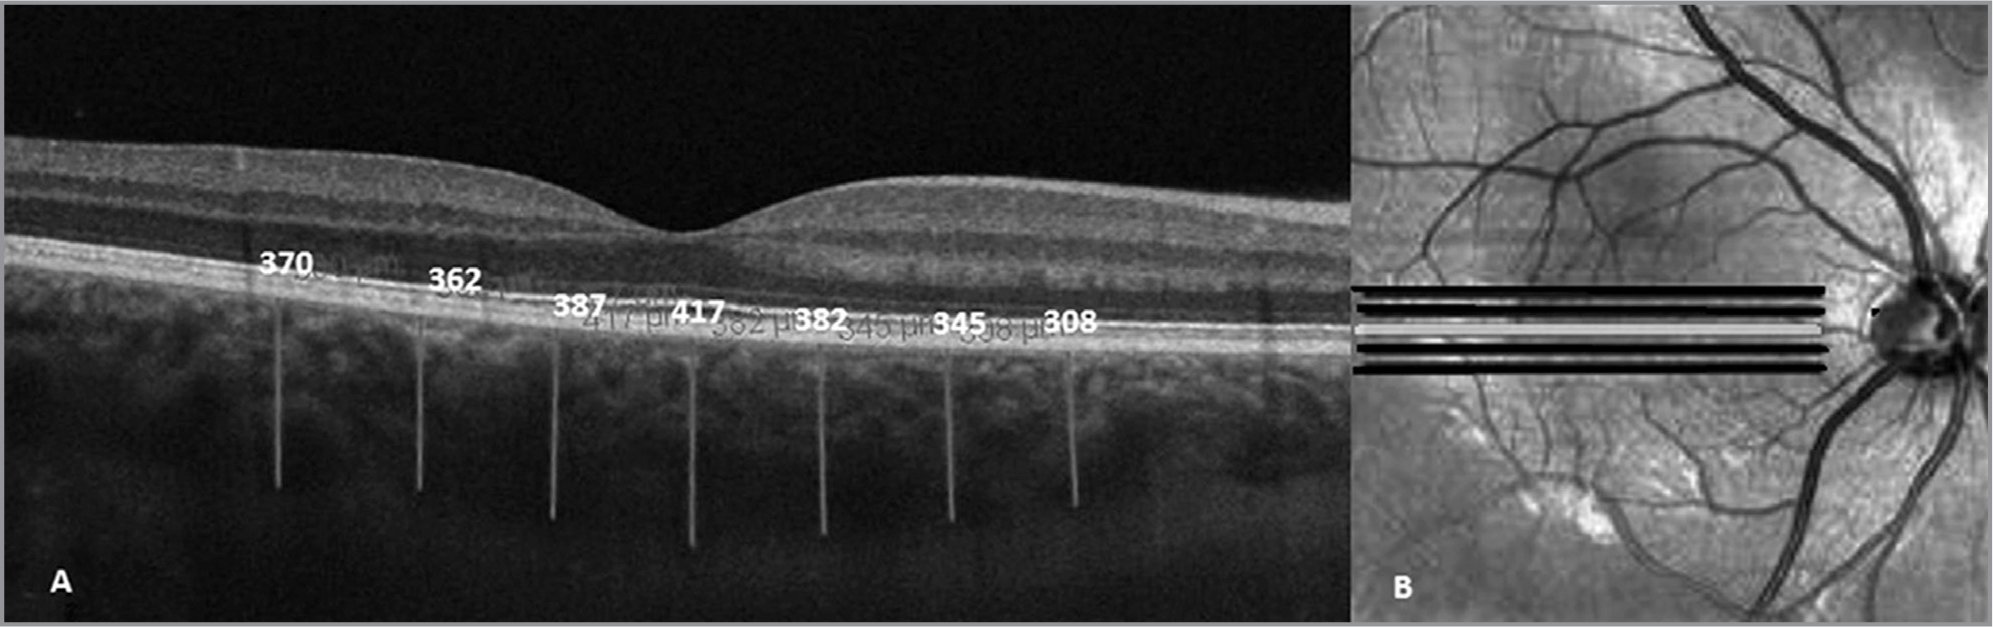 Optical coherence tomography scan showing the choroidal thickness at seven locations (A) and fundus five-line raster photograph (B).